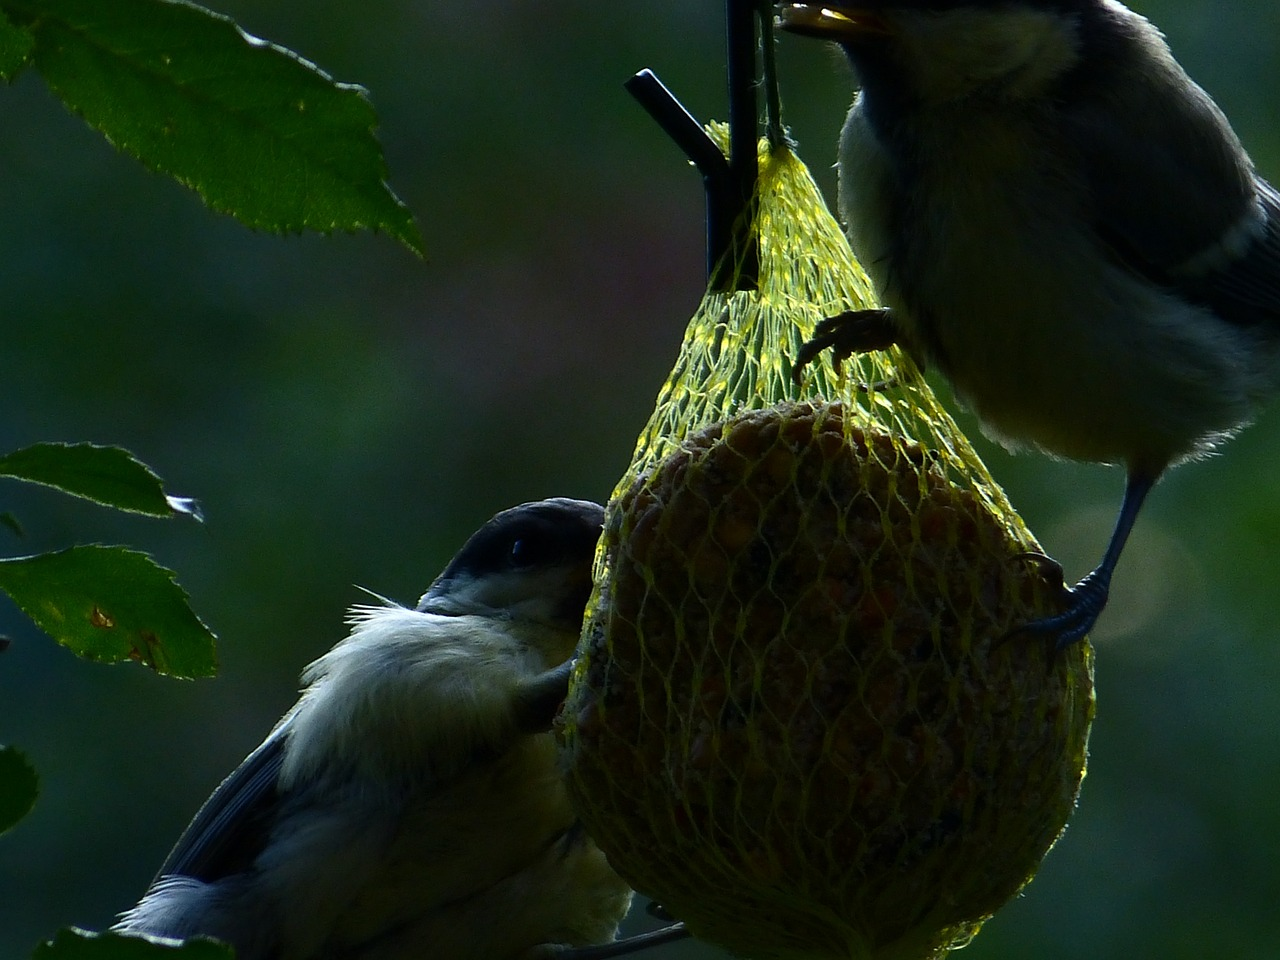 fat balls tit blue tit free photo